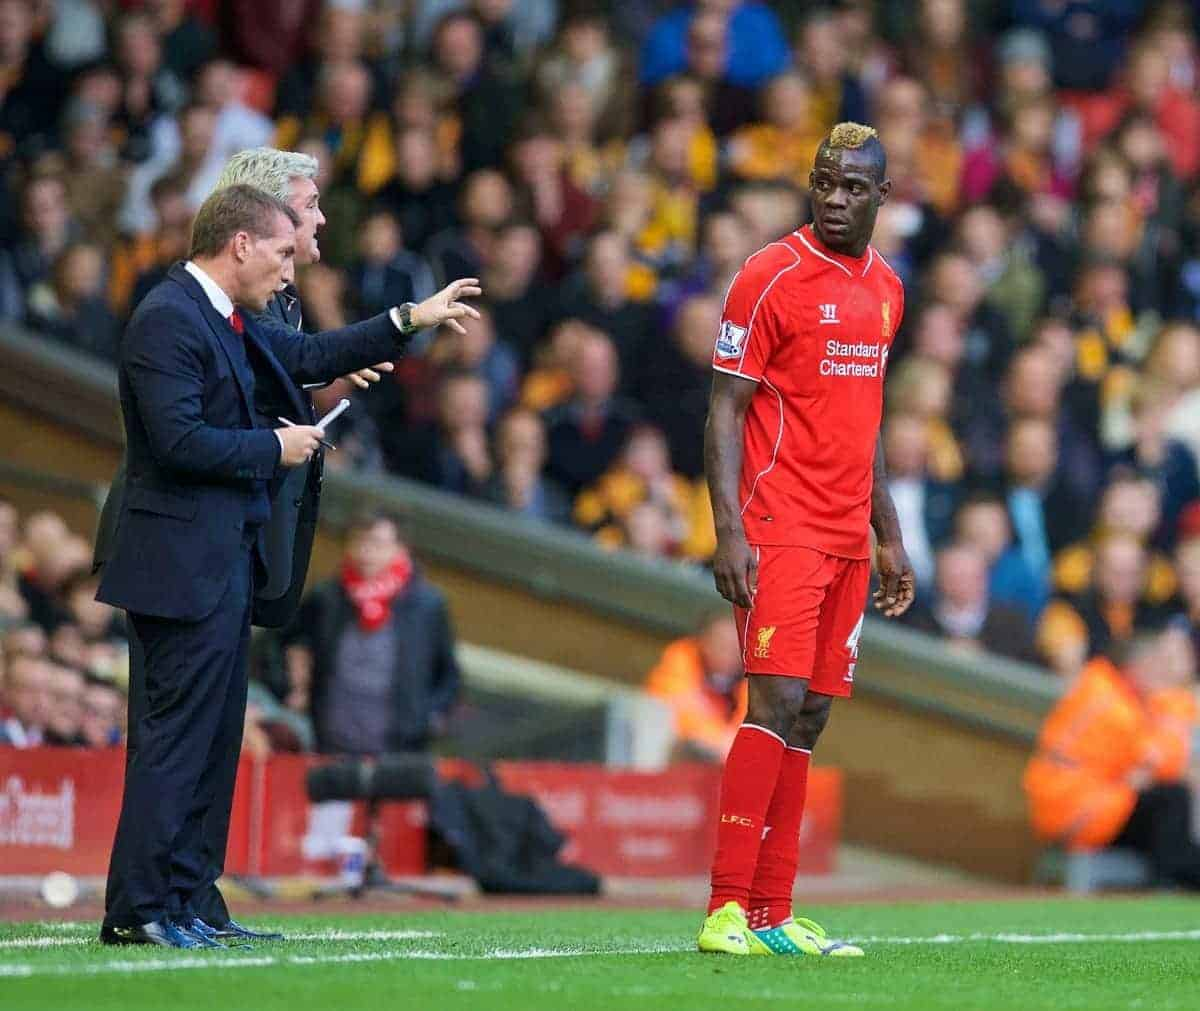 LIVERPOOL, ENGLAND - Saturday, October 25, 2014: Liverpool's manager Brendan Rodgers and Mario Balotelli against Hull City during the Premier League match at Anfield. (Pic by David Rawcliffe/Propaganda)